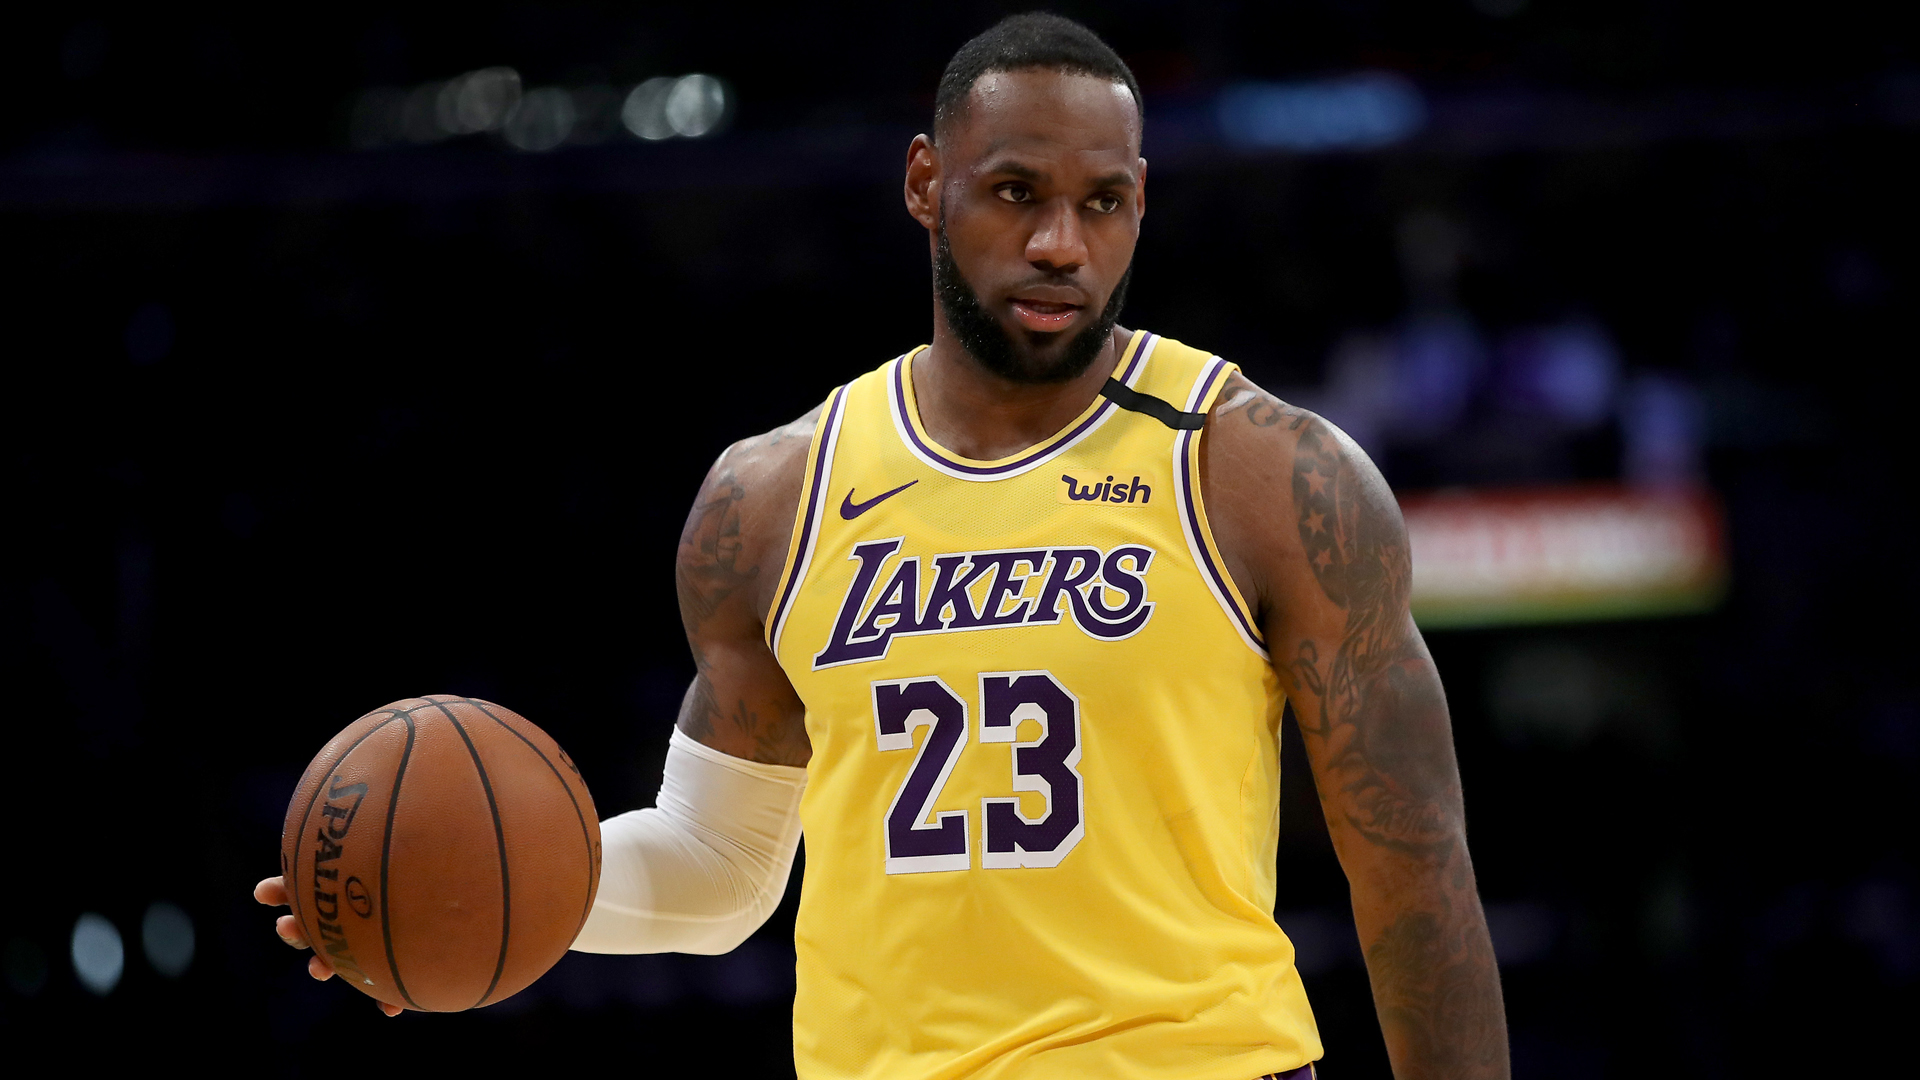 LeBron's Lakers overcome Zion and Pelicans, Giannis shines for Bucks